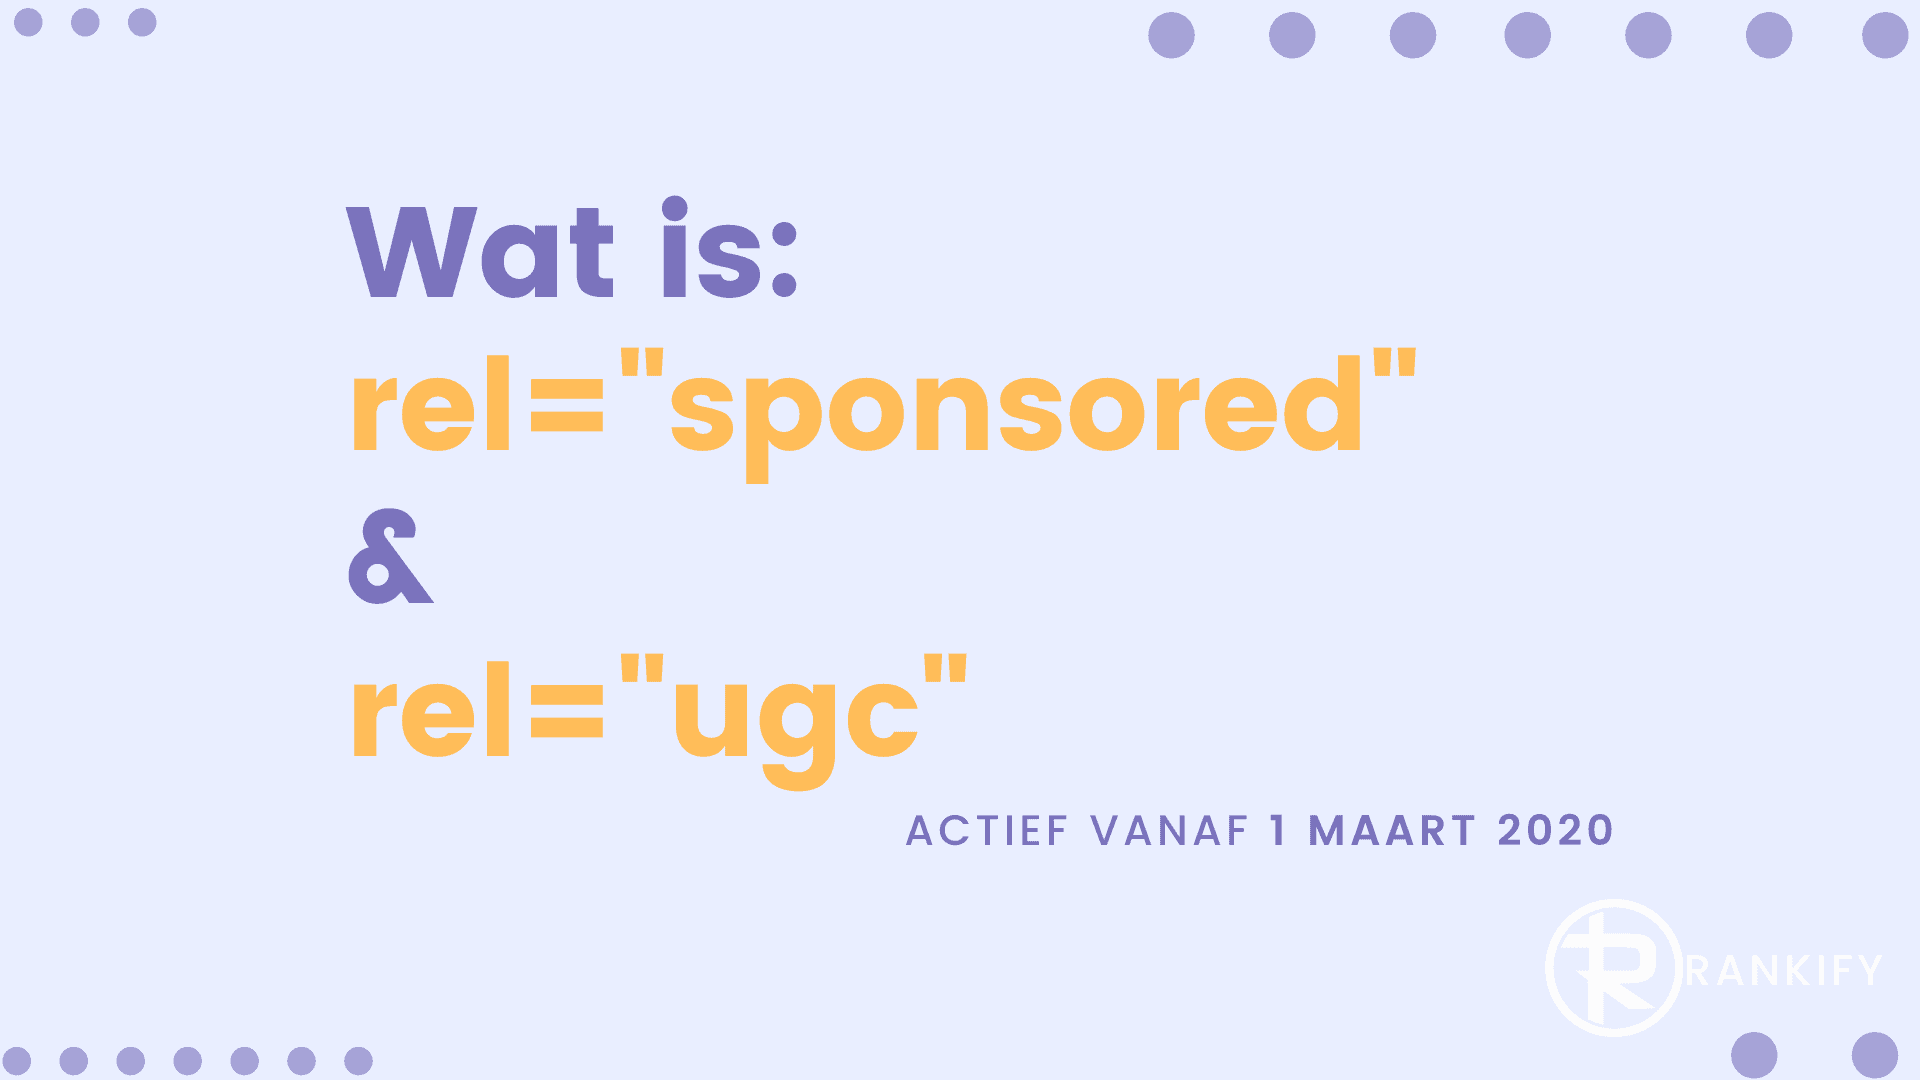 wat is rel sponsored en rel ugc